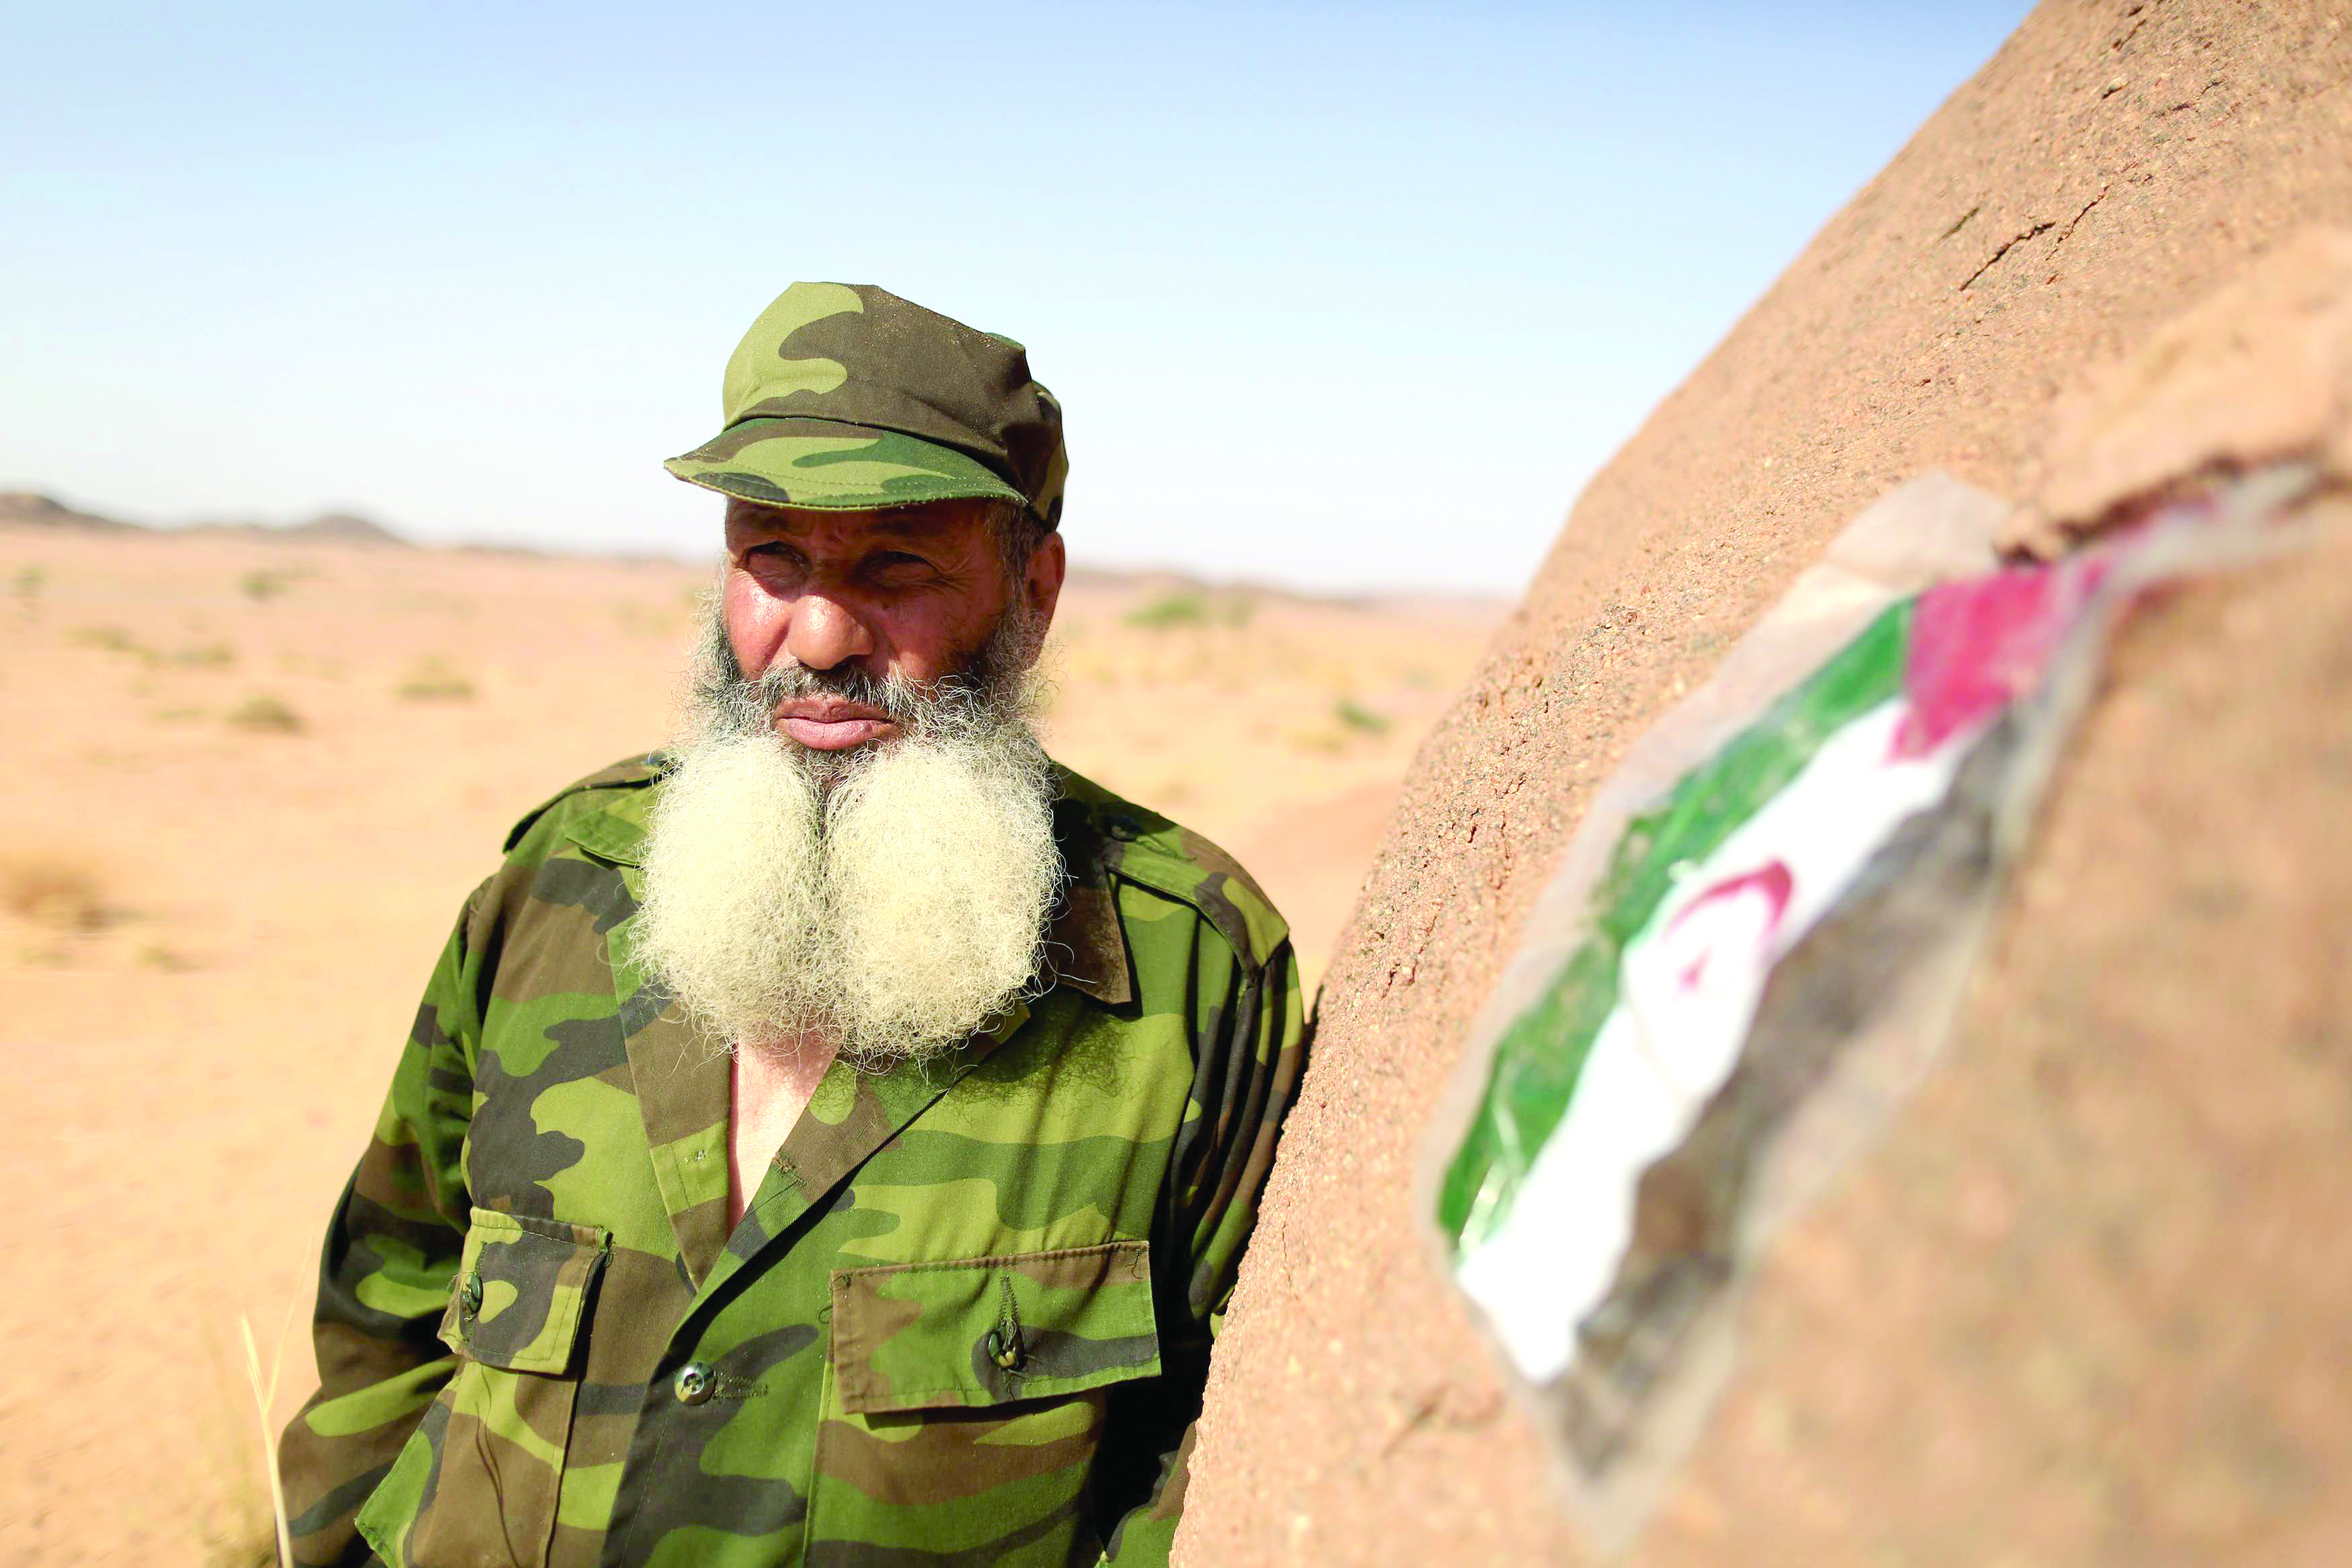 A Polisario Front fighter is seen on the outskirts of Tifariti in the Western Sahara.   (Reuters)